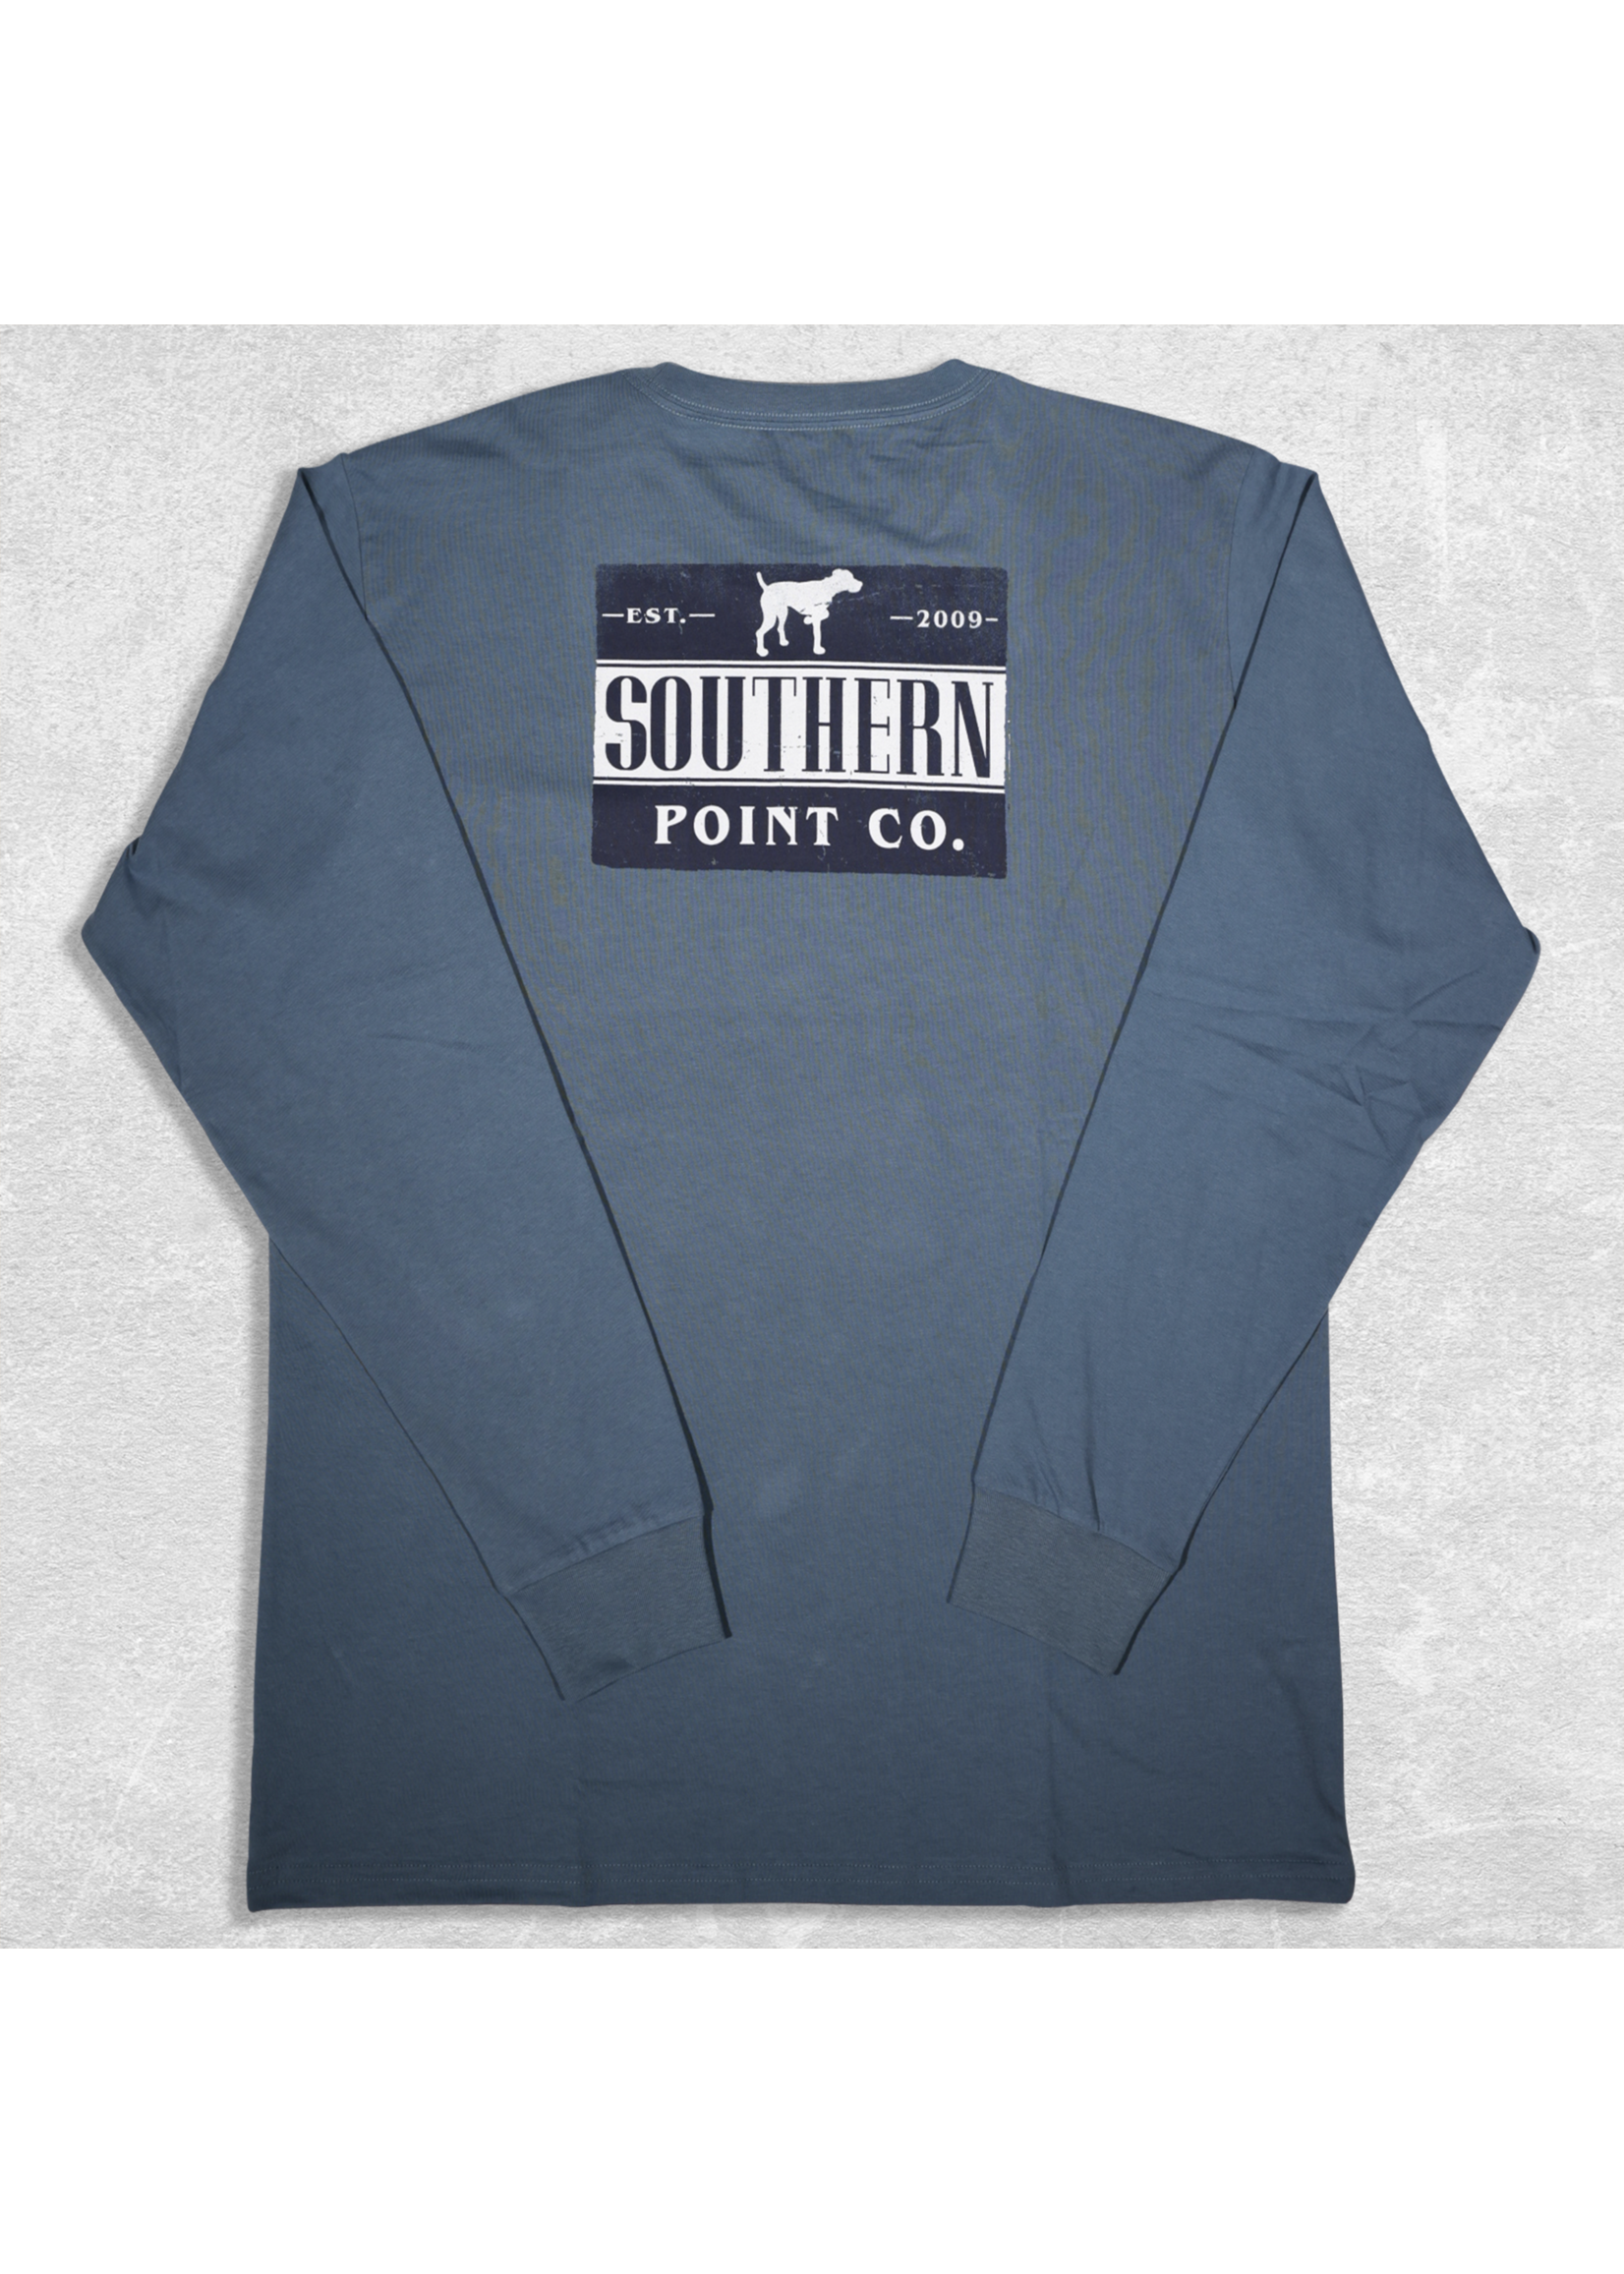 Southern Point Co. Vintage Long Sleeve Signature Tee